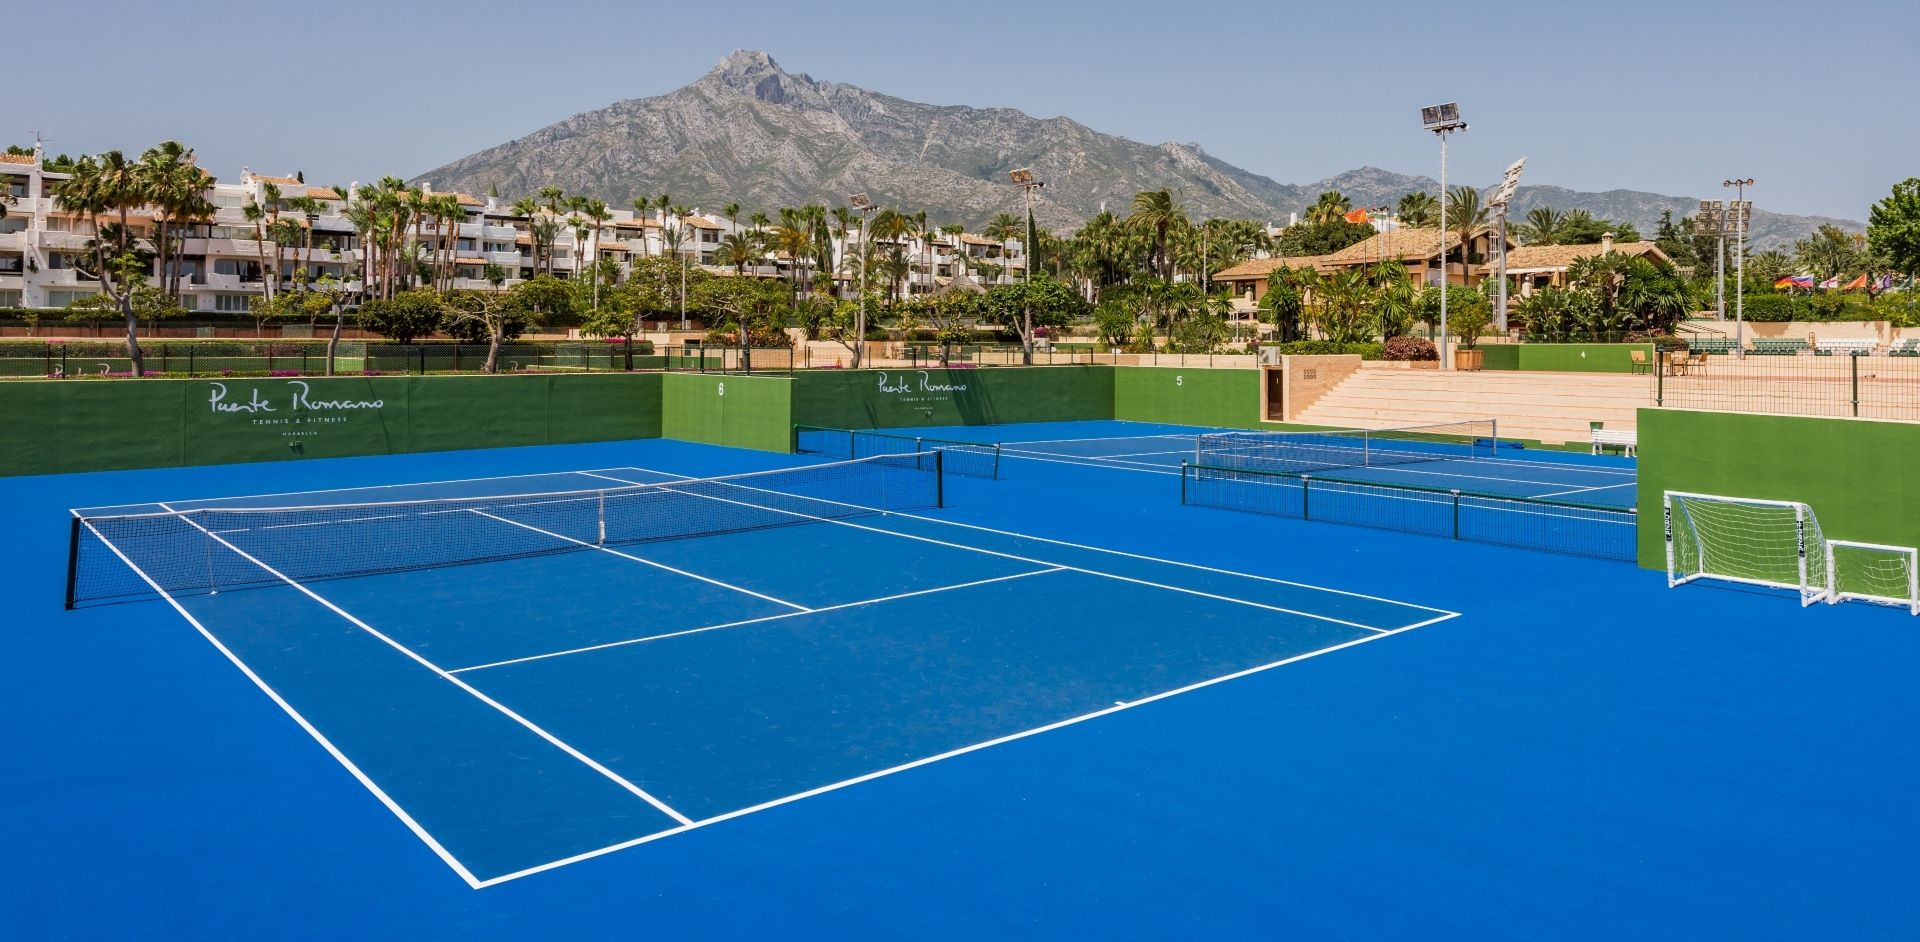 Incredible tennis facilities